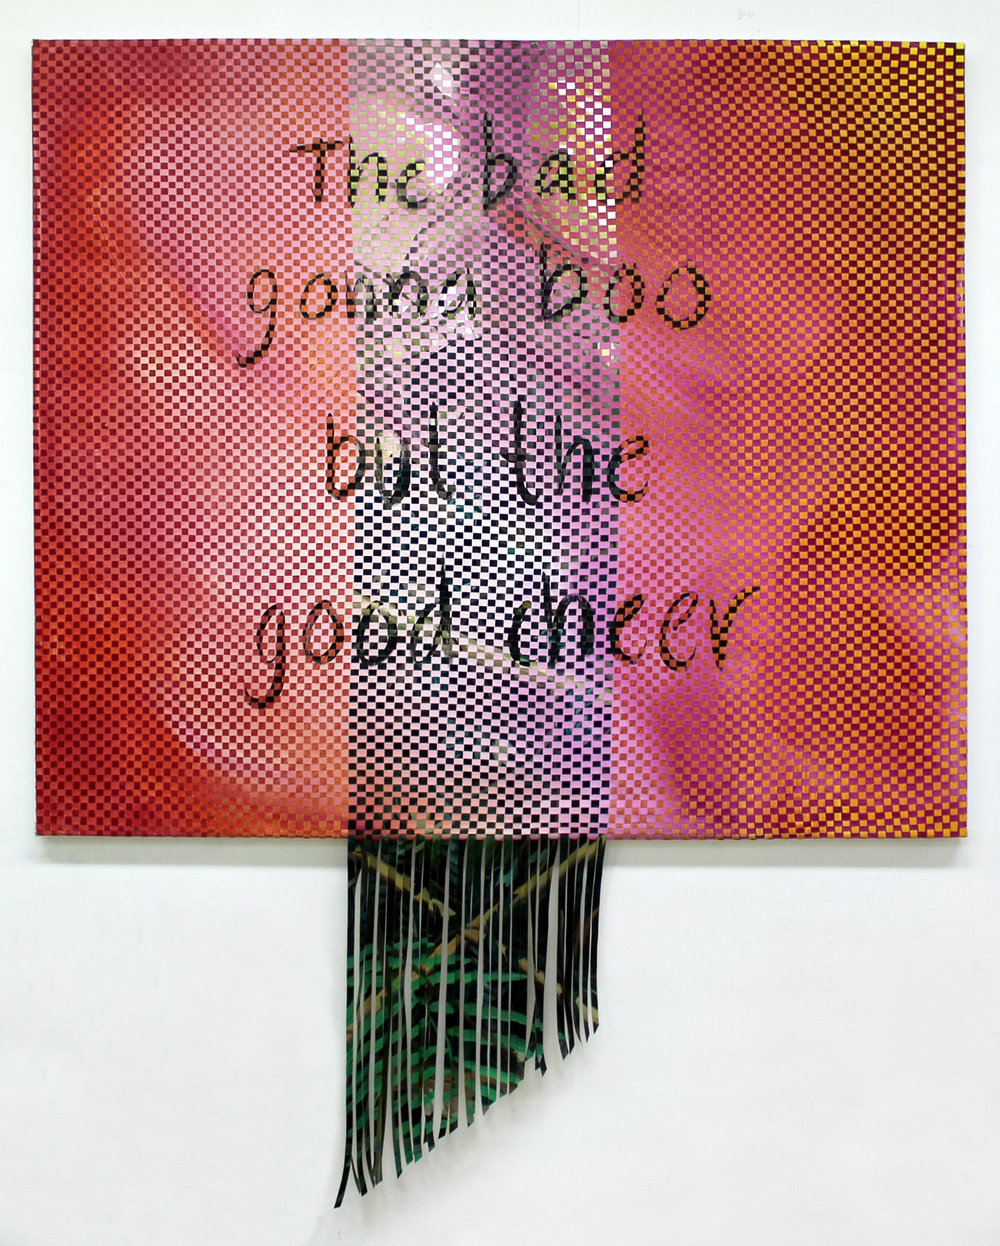 The Bad Gonna Boo, 2015, 122 (+ 56) x 140 cm, oil on 3 canvases, weaved together.jpg